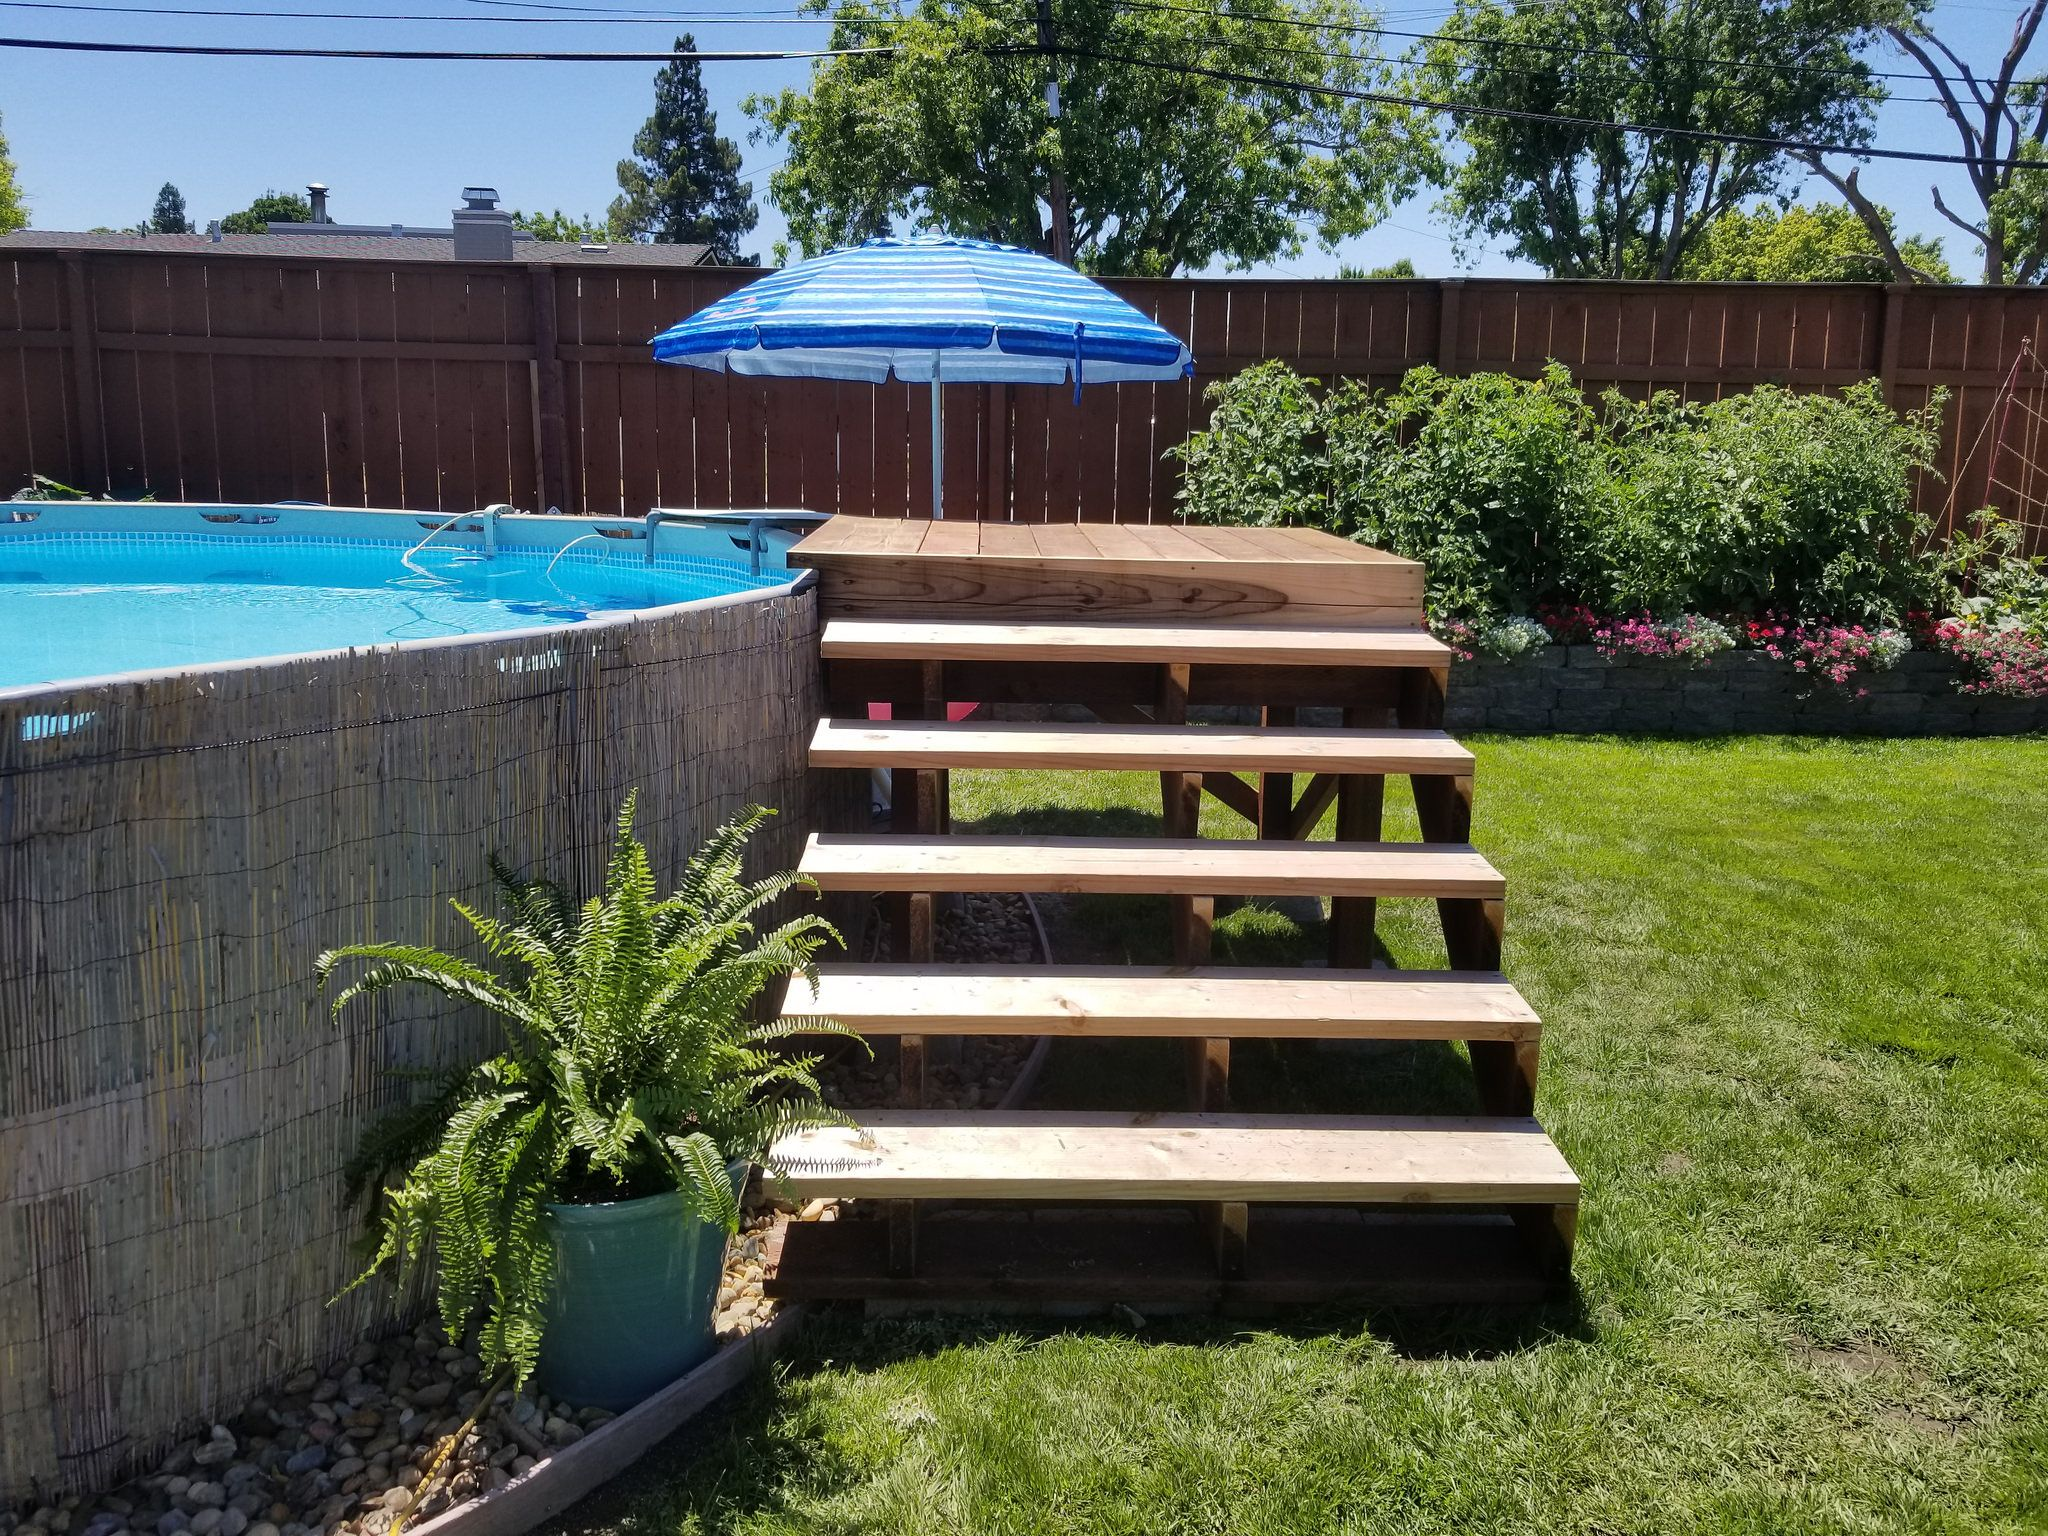 20170618_114845 Pool landscaping, Above ground pool